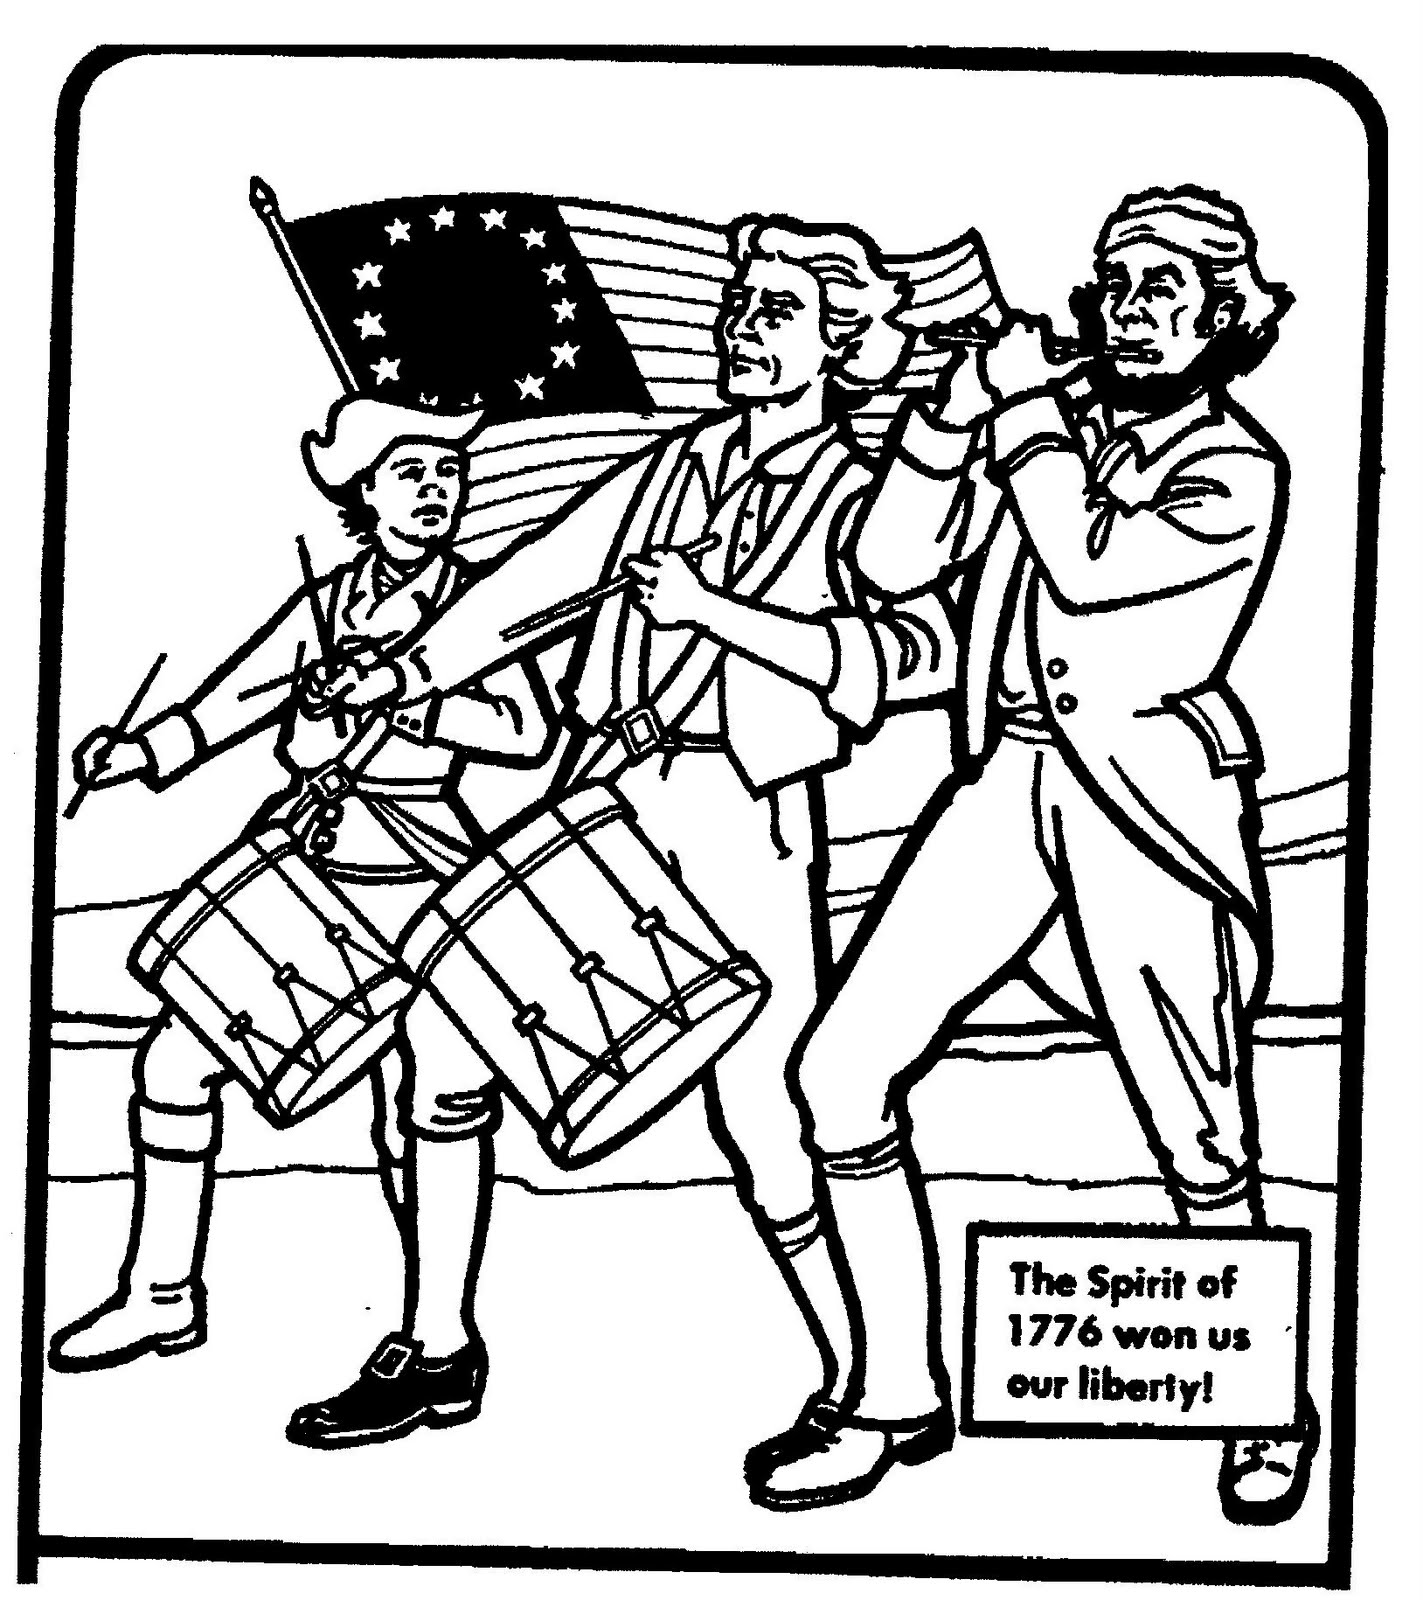 Mostly Paper Dolls: Spirit of 1776 Coloring Series